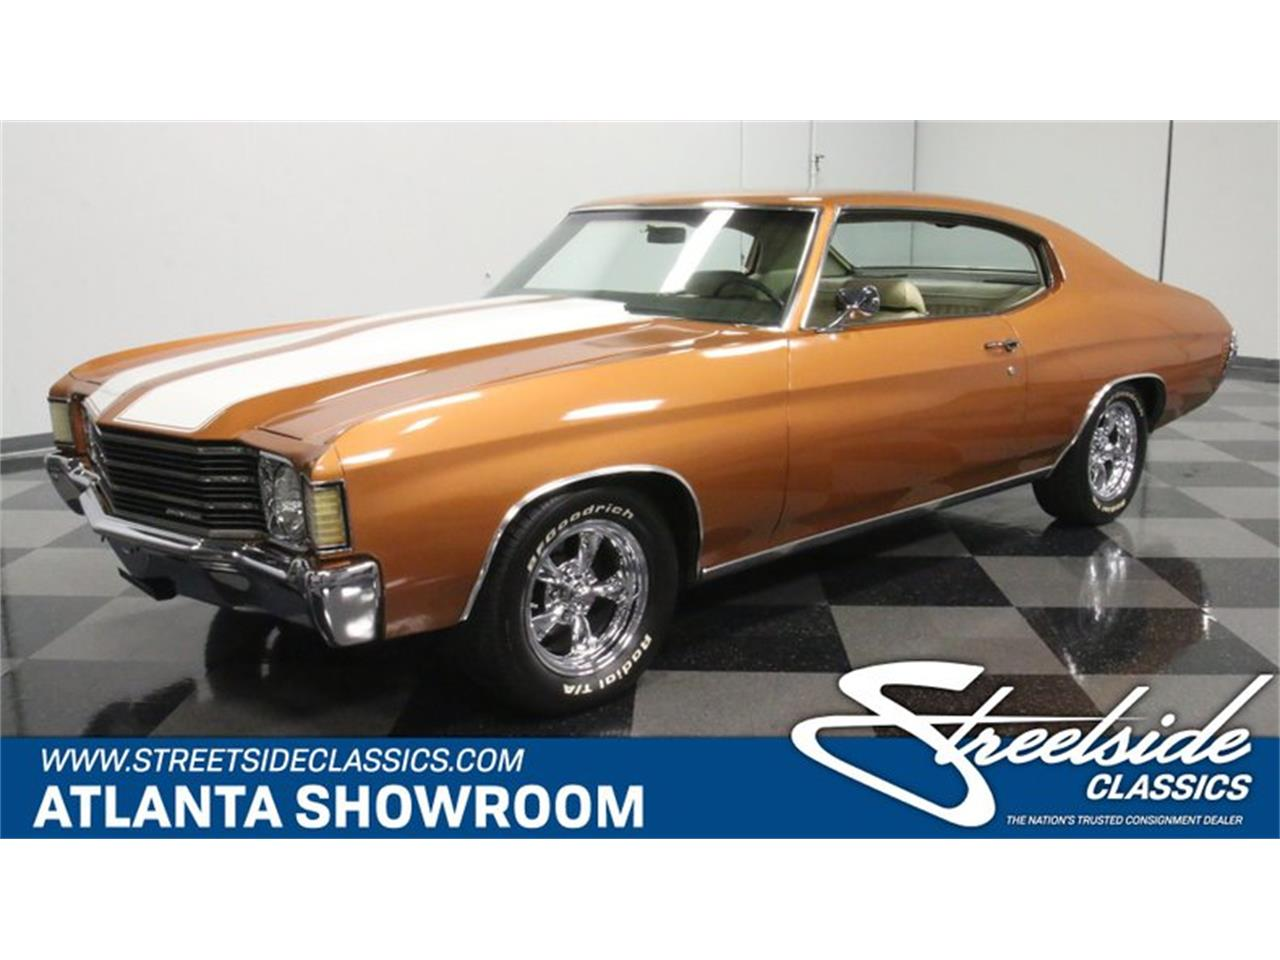 Large Picture of Classic '72 Chevrolet Chevelle located in Georgia - $31,995.00 Offered by Streetside Classics - Atlanta - Q10H